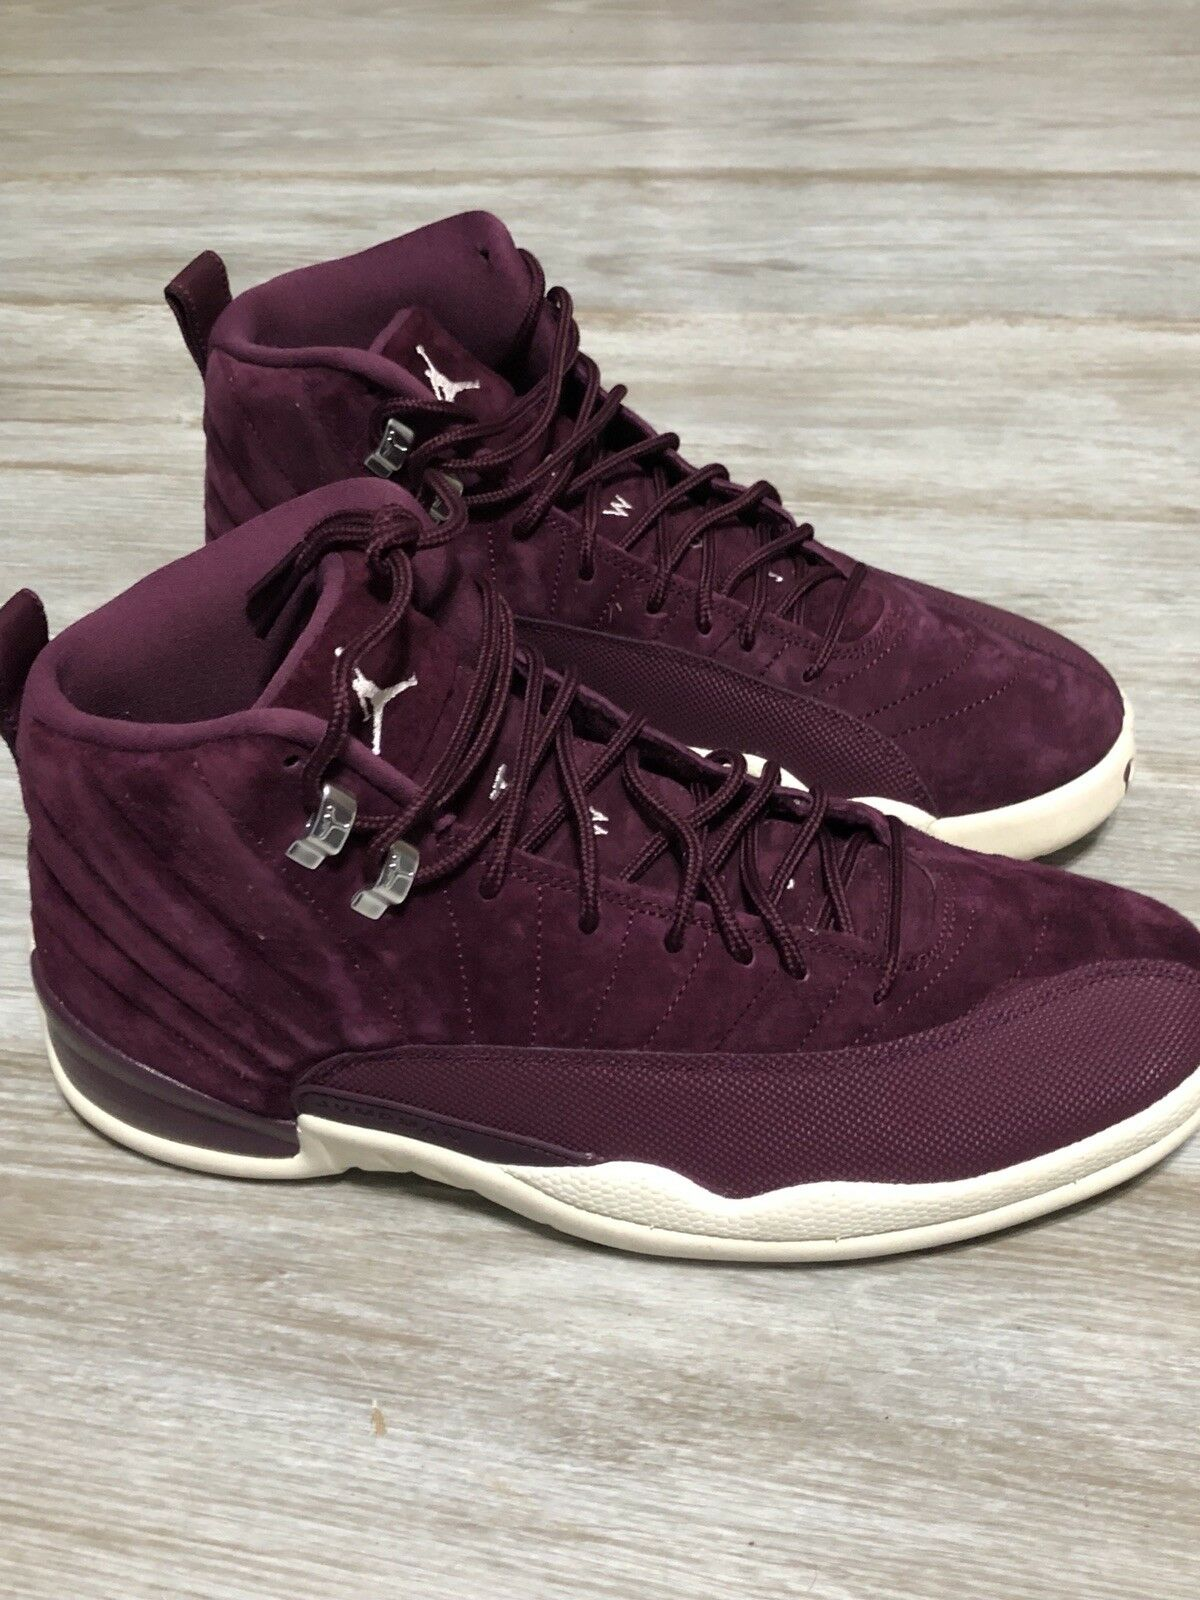 nike air bordeaux jordan 12 retro - bordeaux air - größe. ca8ca5